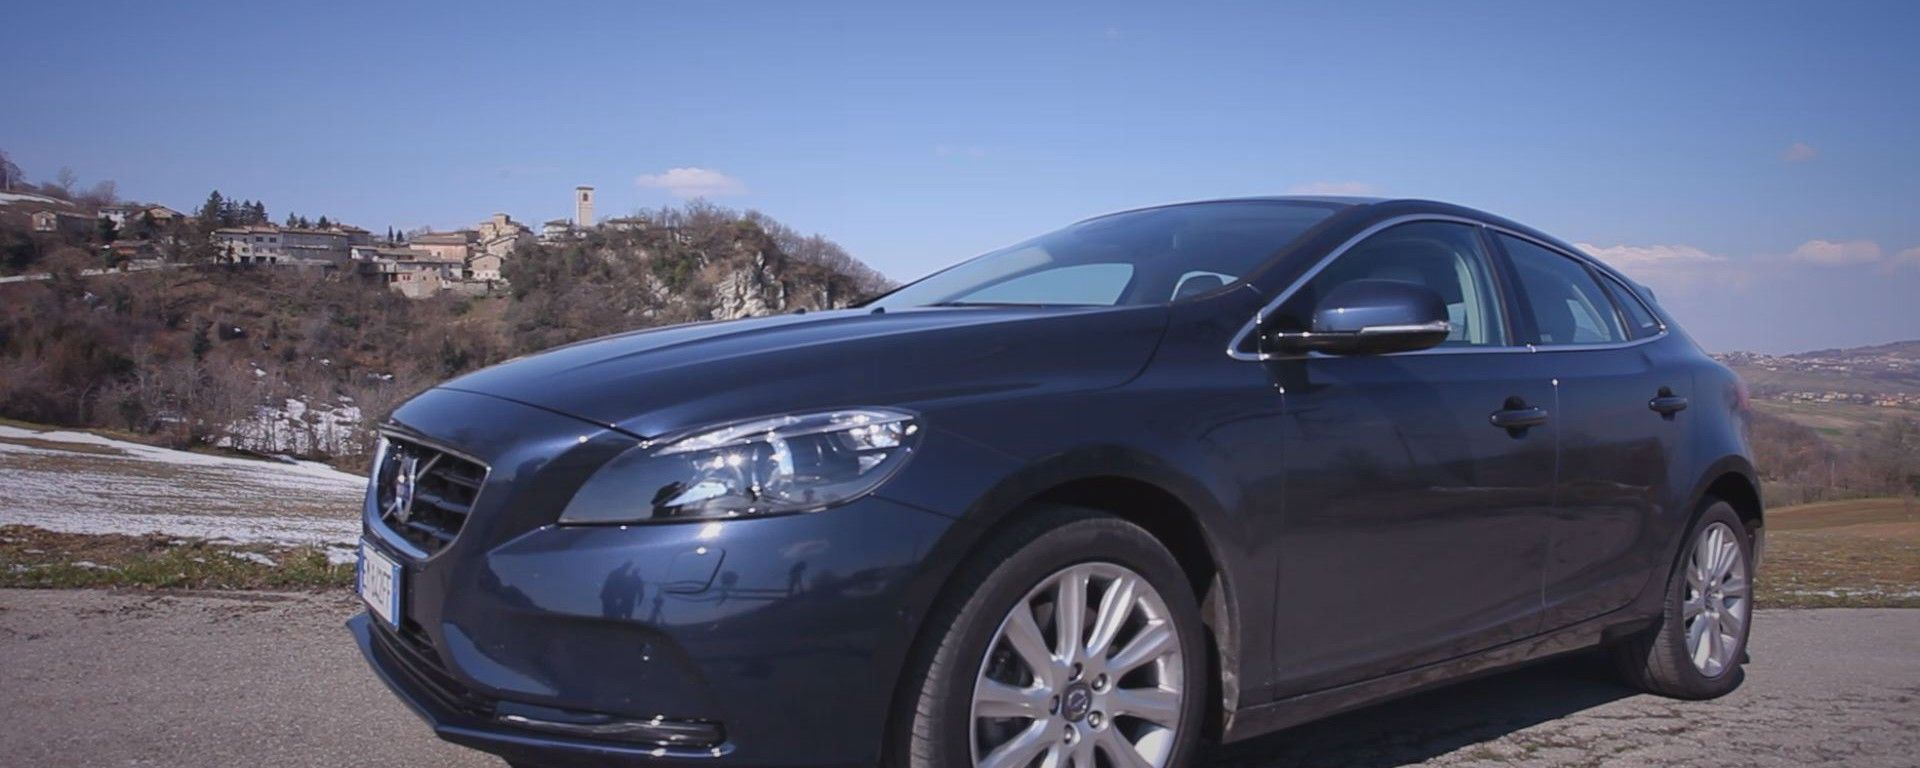 Volvo V40 D3 Geartronic Summum